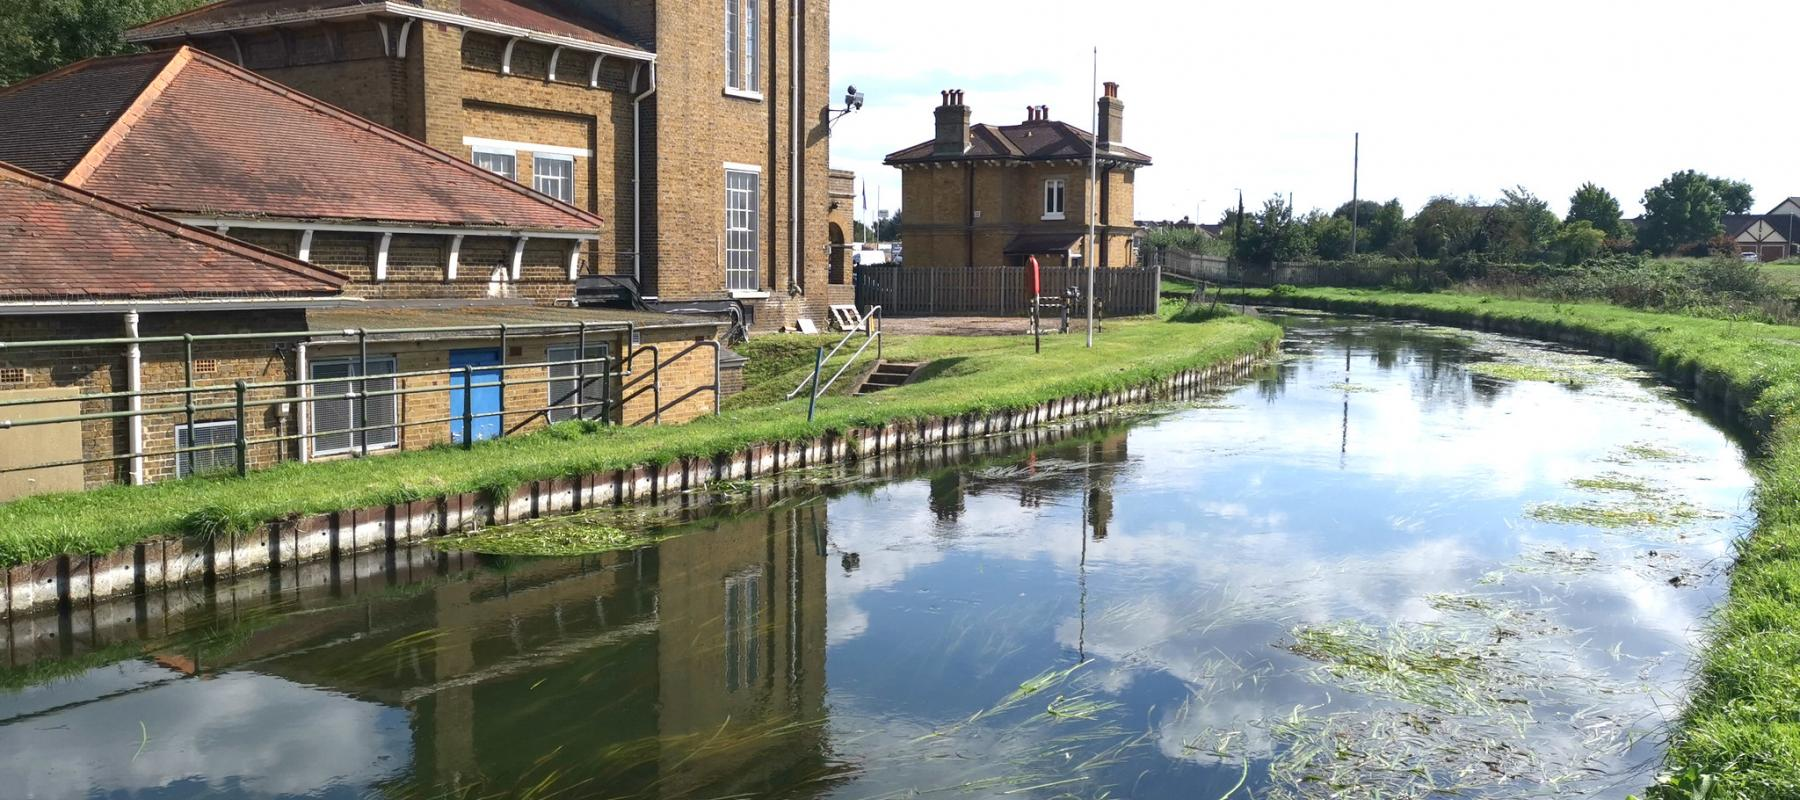 Rye House Victorian pumping station on the banks of the New River Way